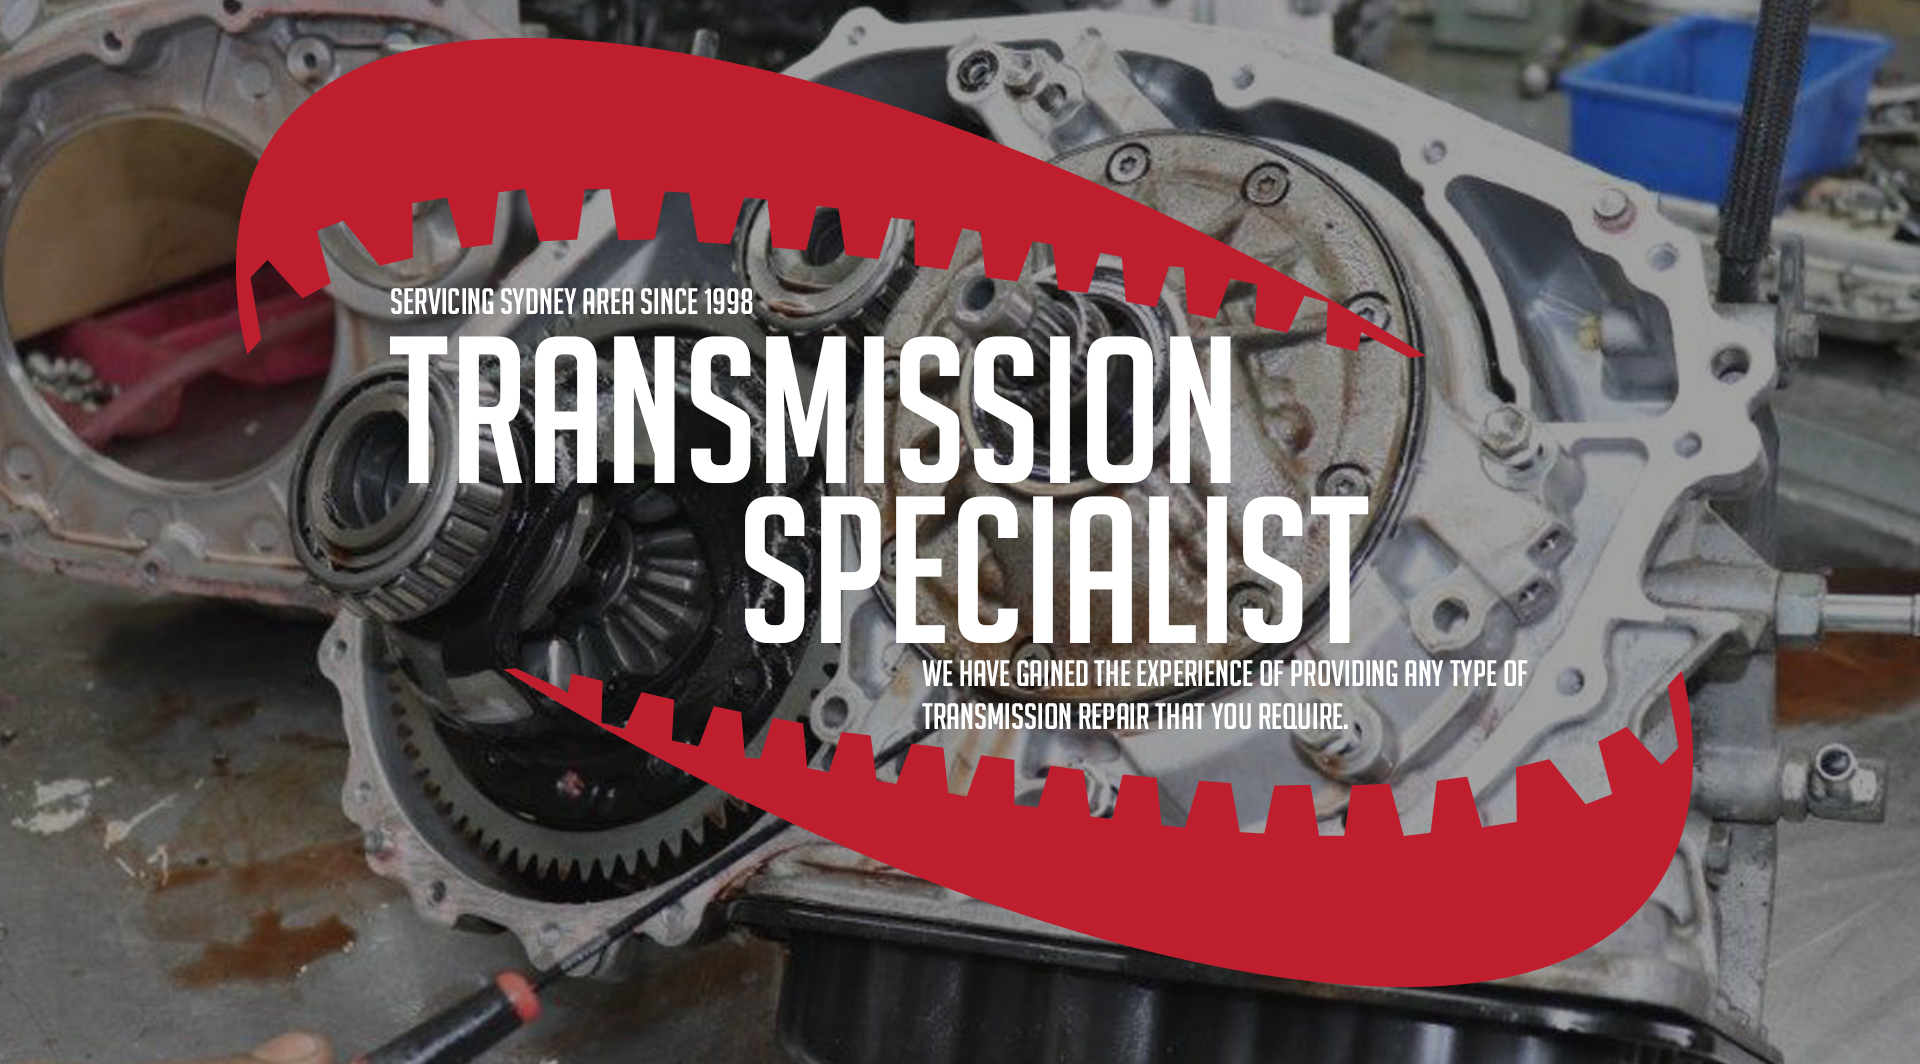 Are you looking for Transmission Repair in Sydney?